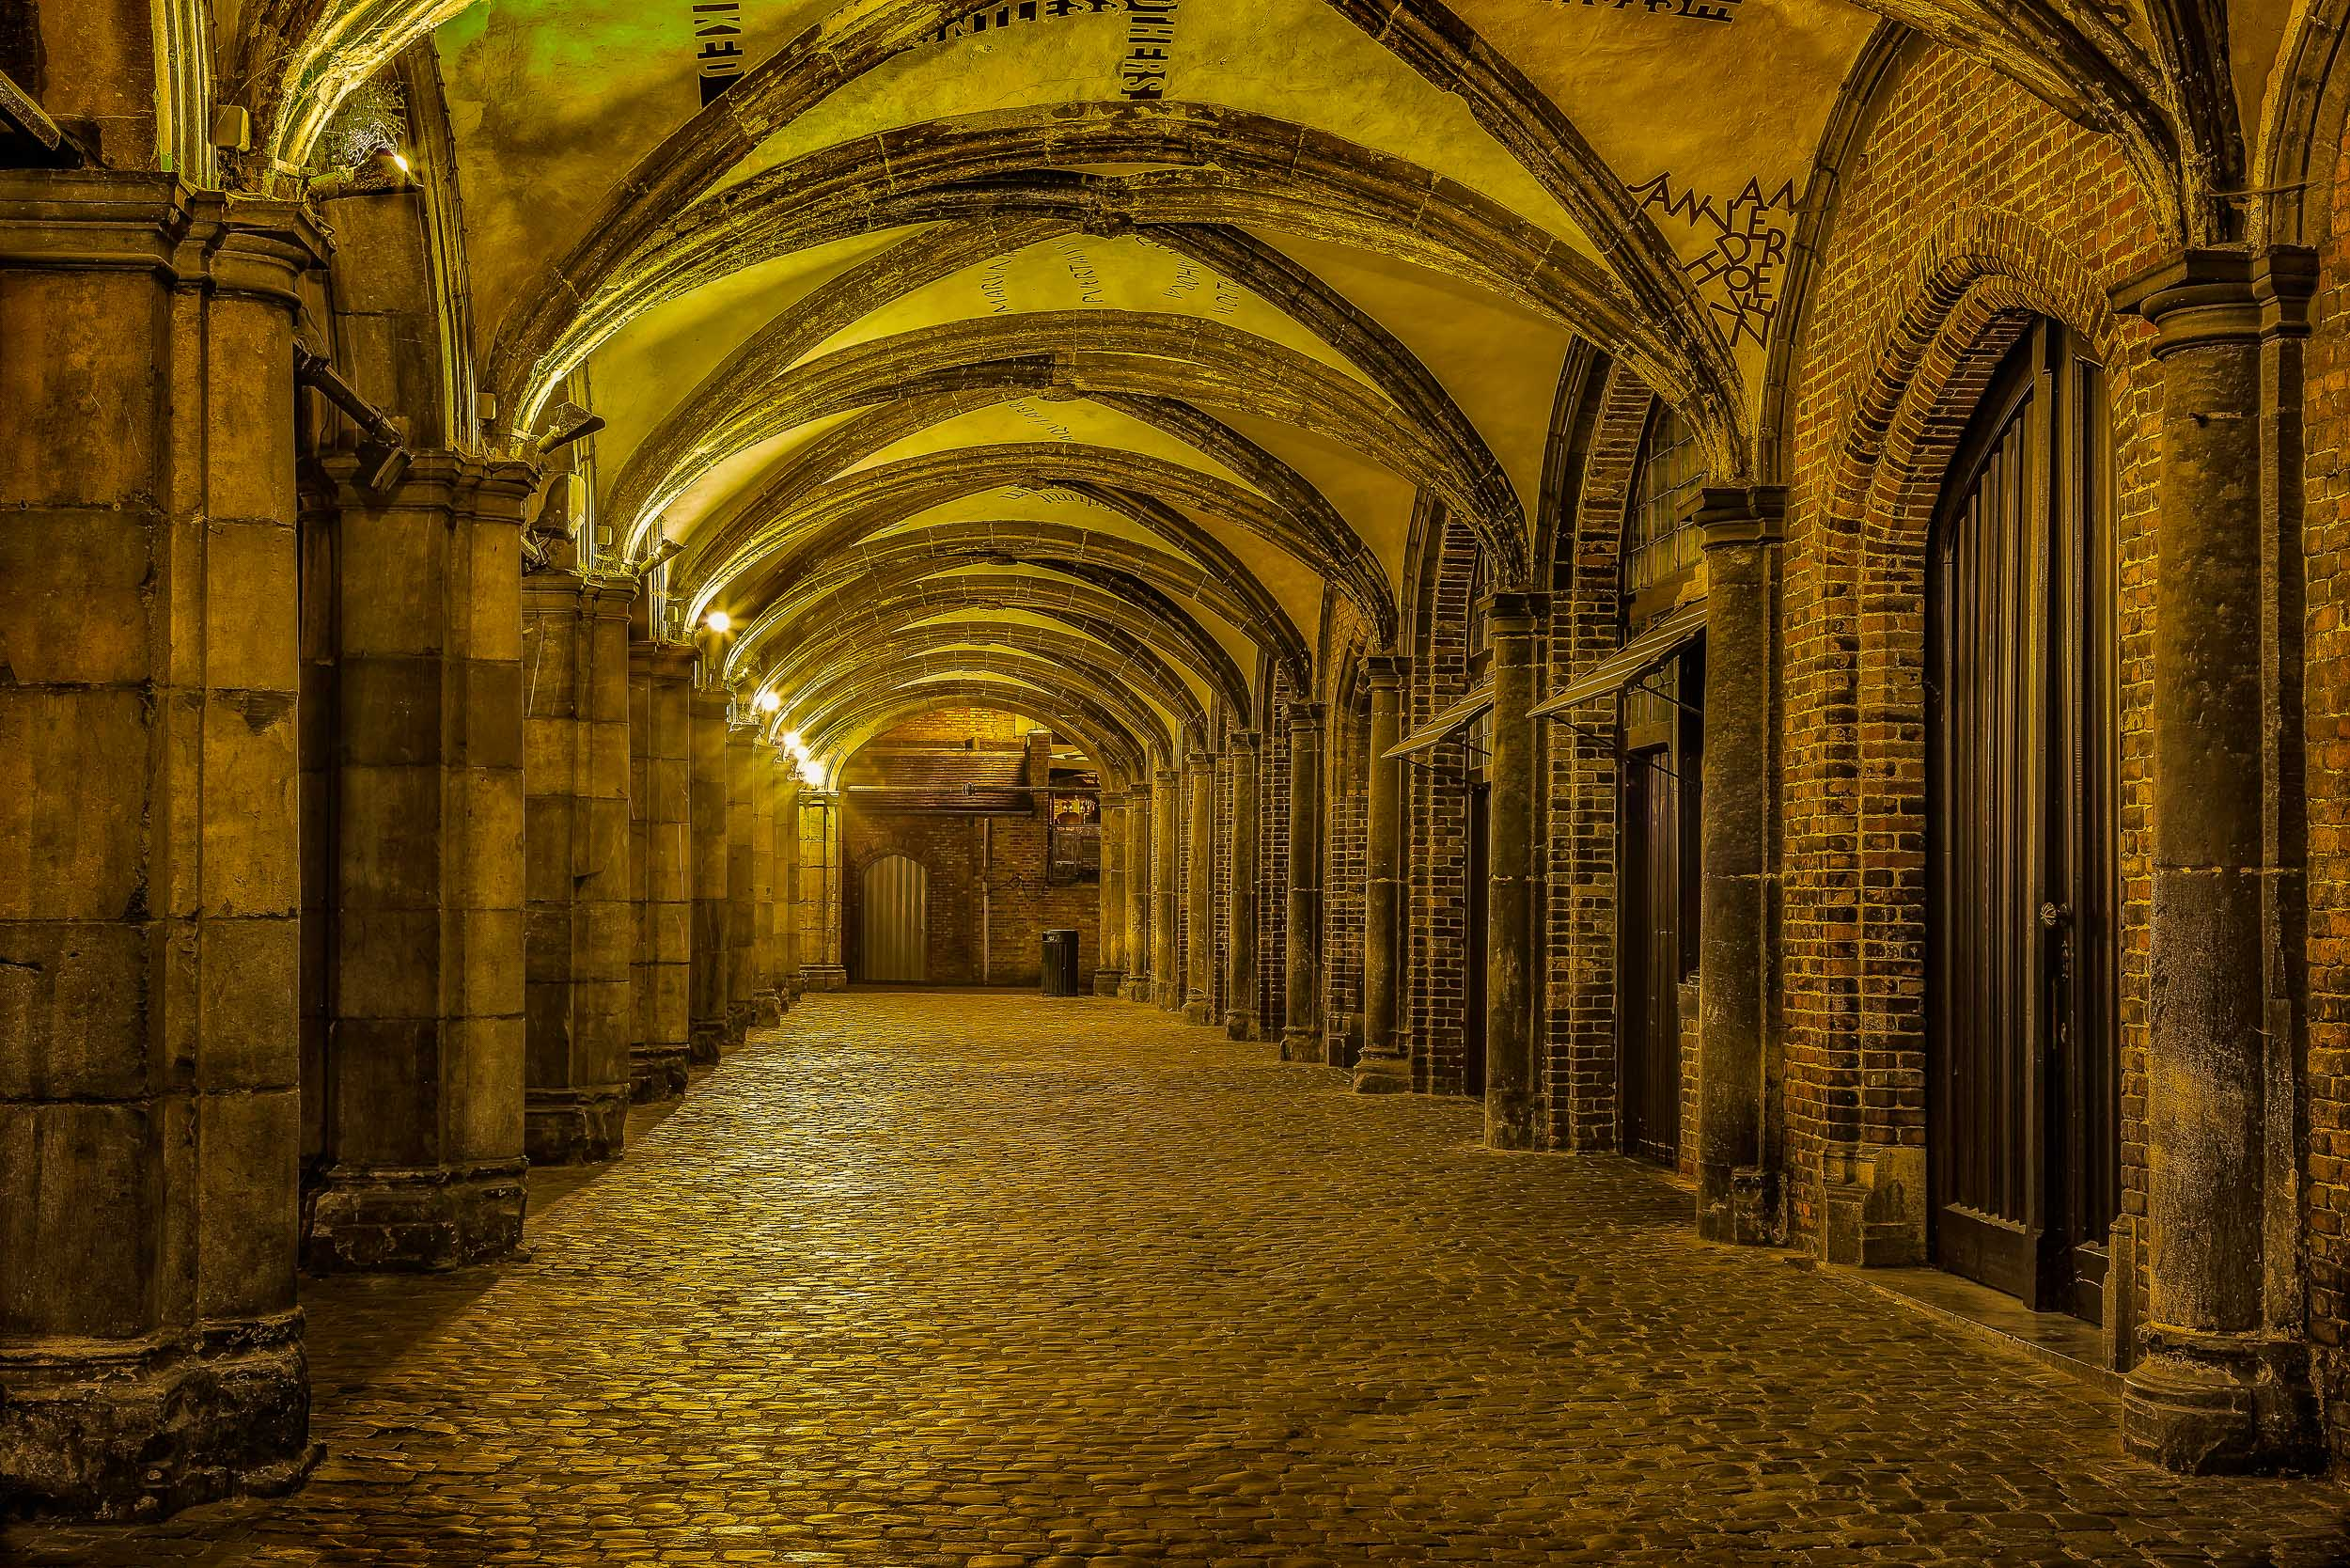 Artificial light illuminates this brooding walkway at night in the city of Bruges (i.e., Brugge), Belgium.